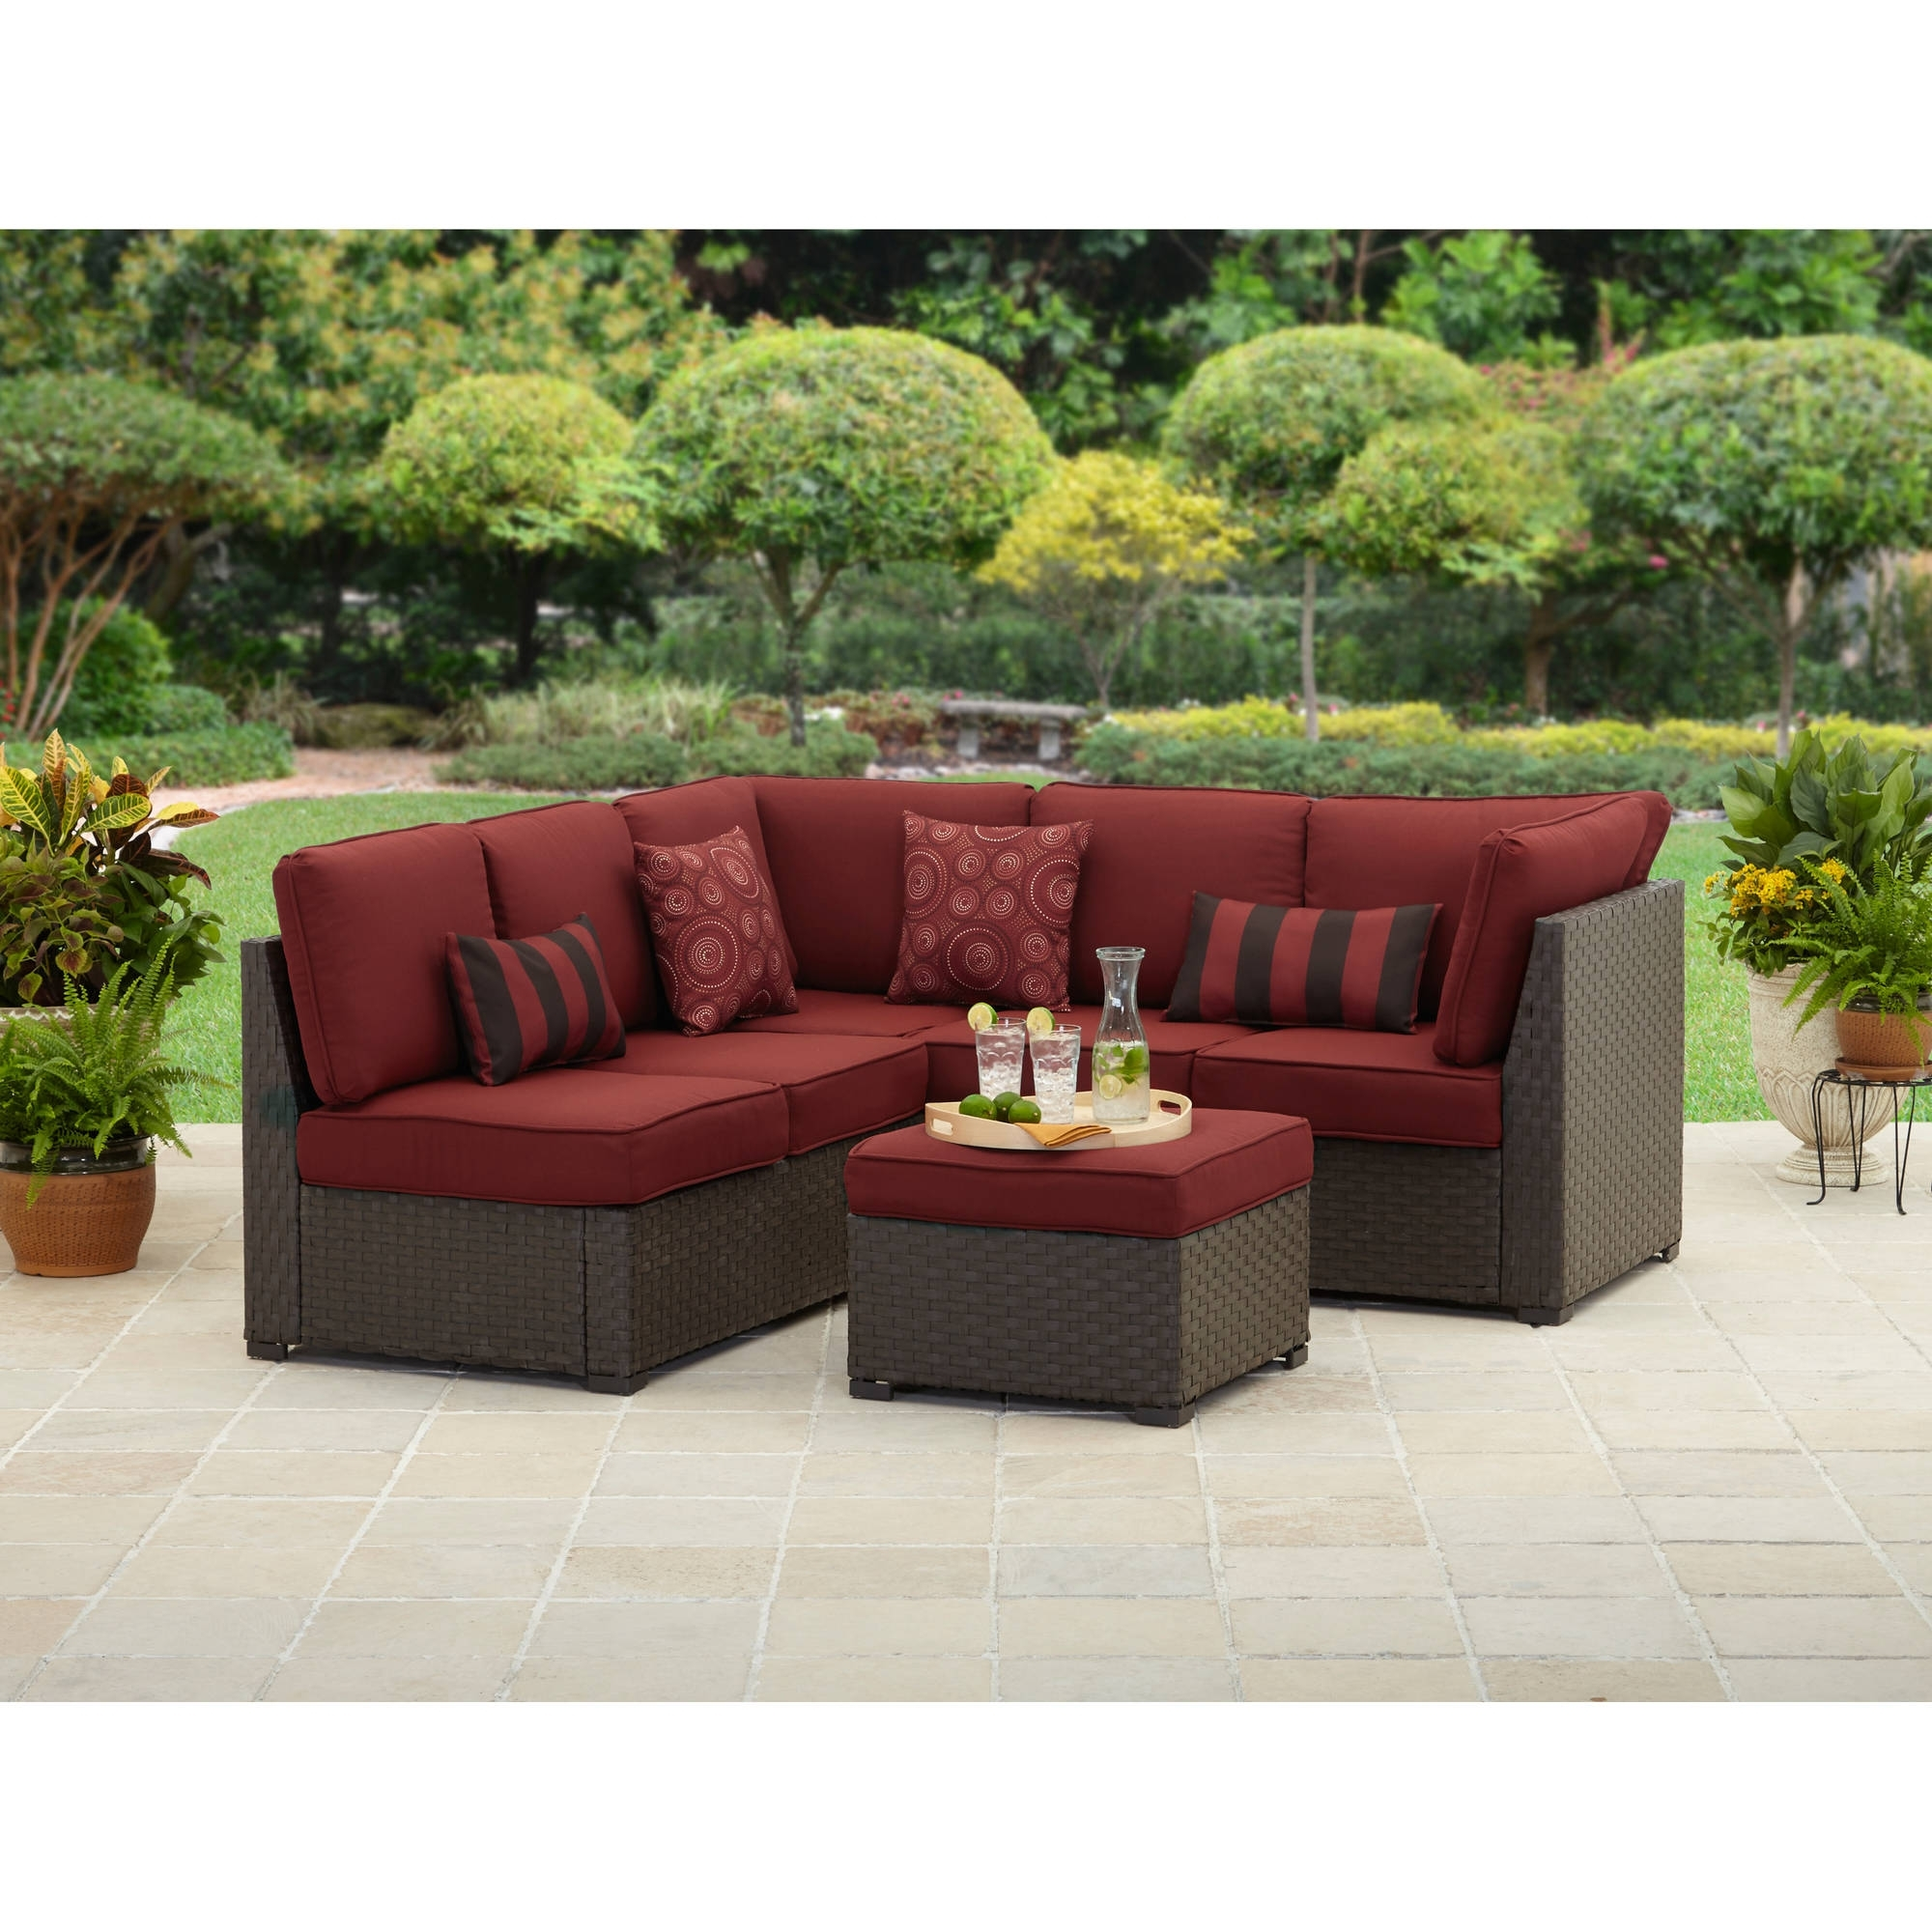 Patio Sofas For Most Recent Better Homes And Gardens Rush Valley 3 Piece Outdoor Sectional (View 12 of 20)